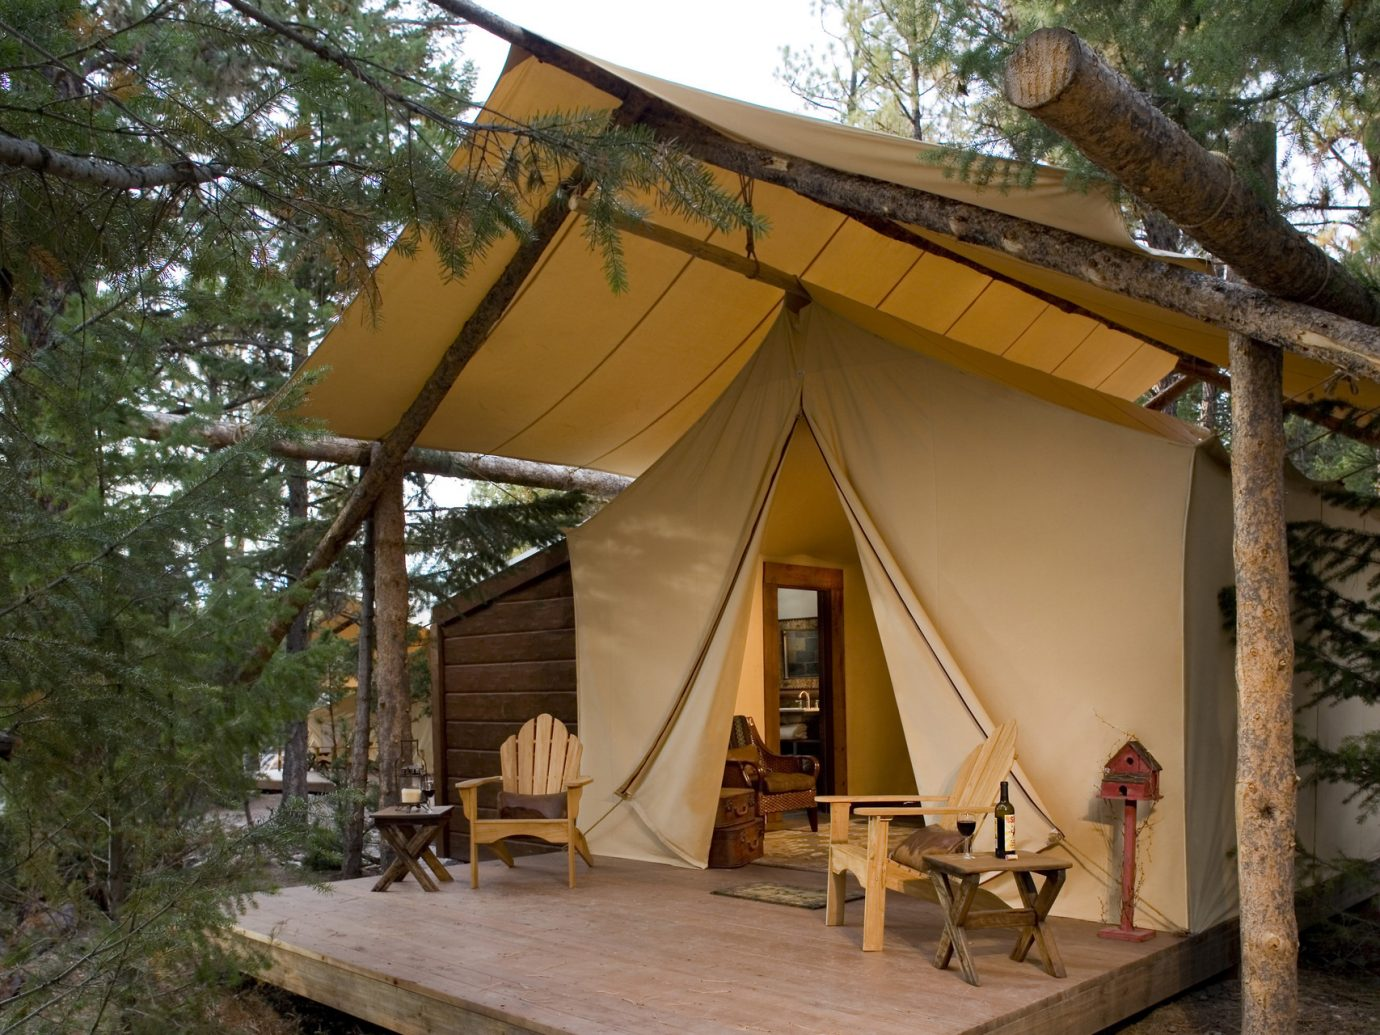 Exterior of a tent at The Resort at Paws Up, Montana